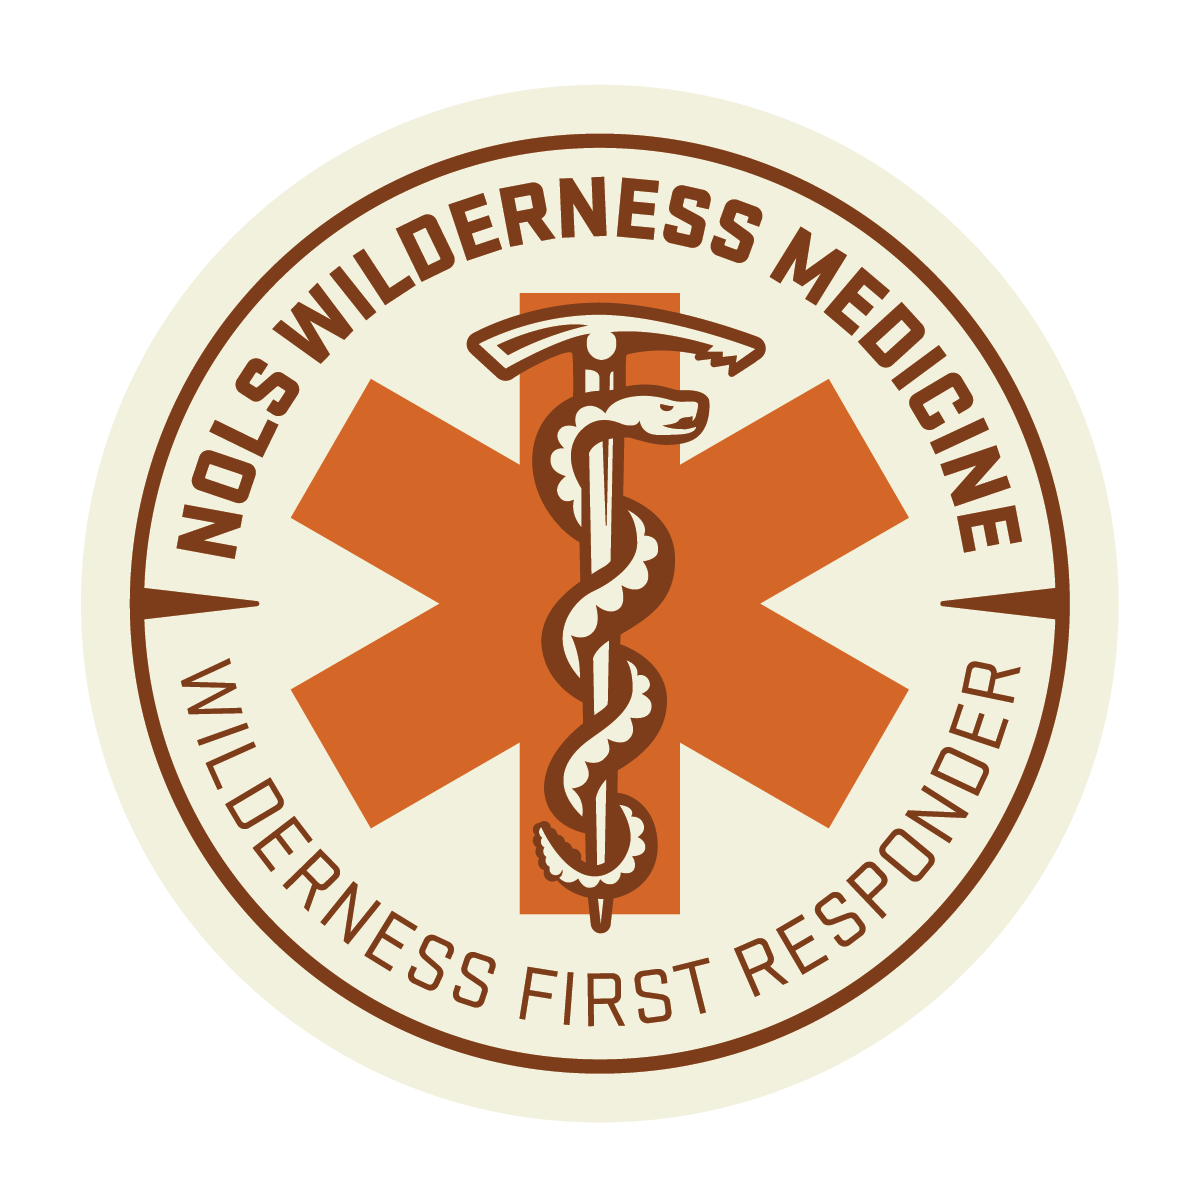 Wilderness First Responder Badge from NOLS Wilderness Medicine